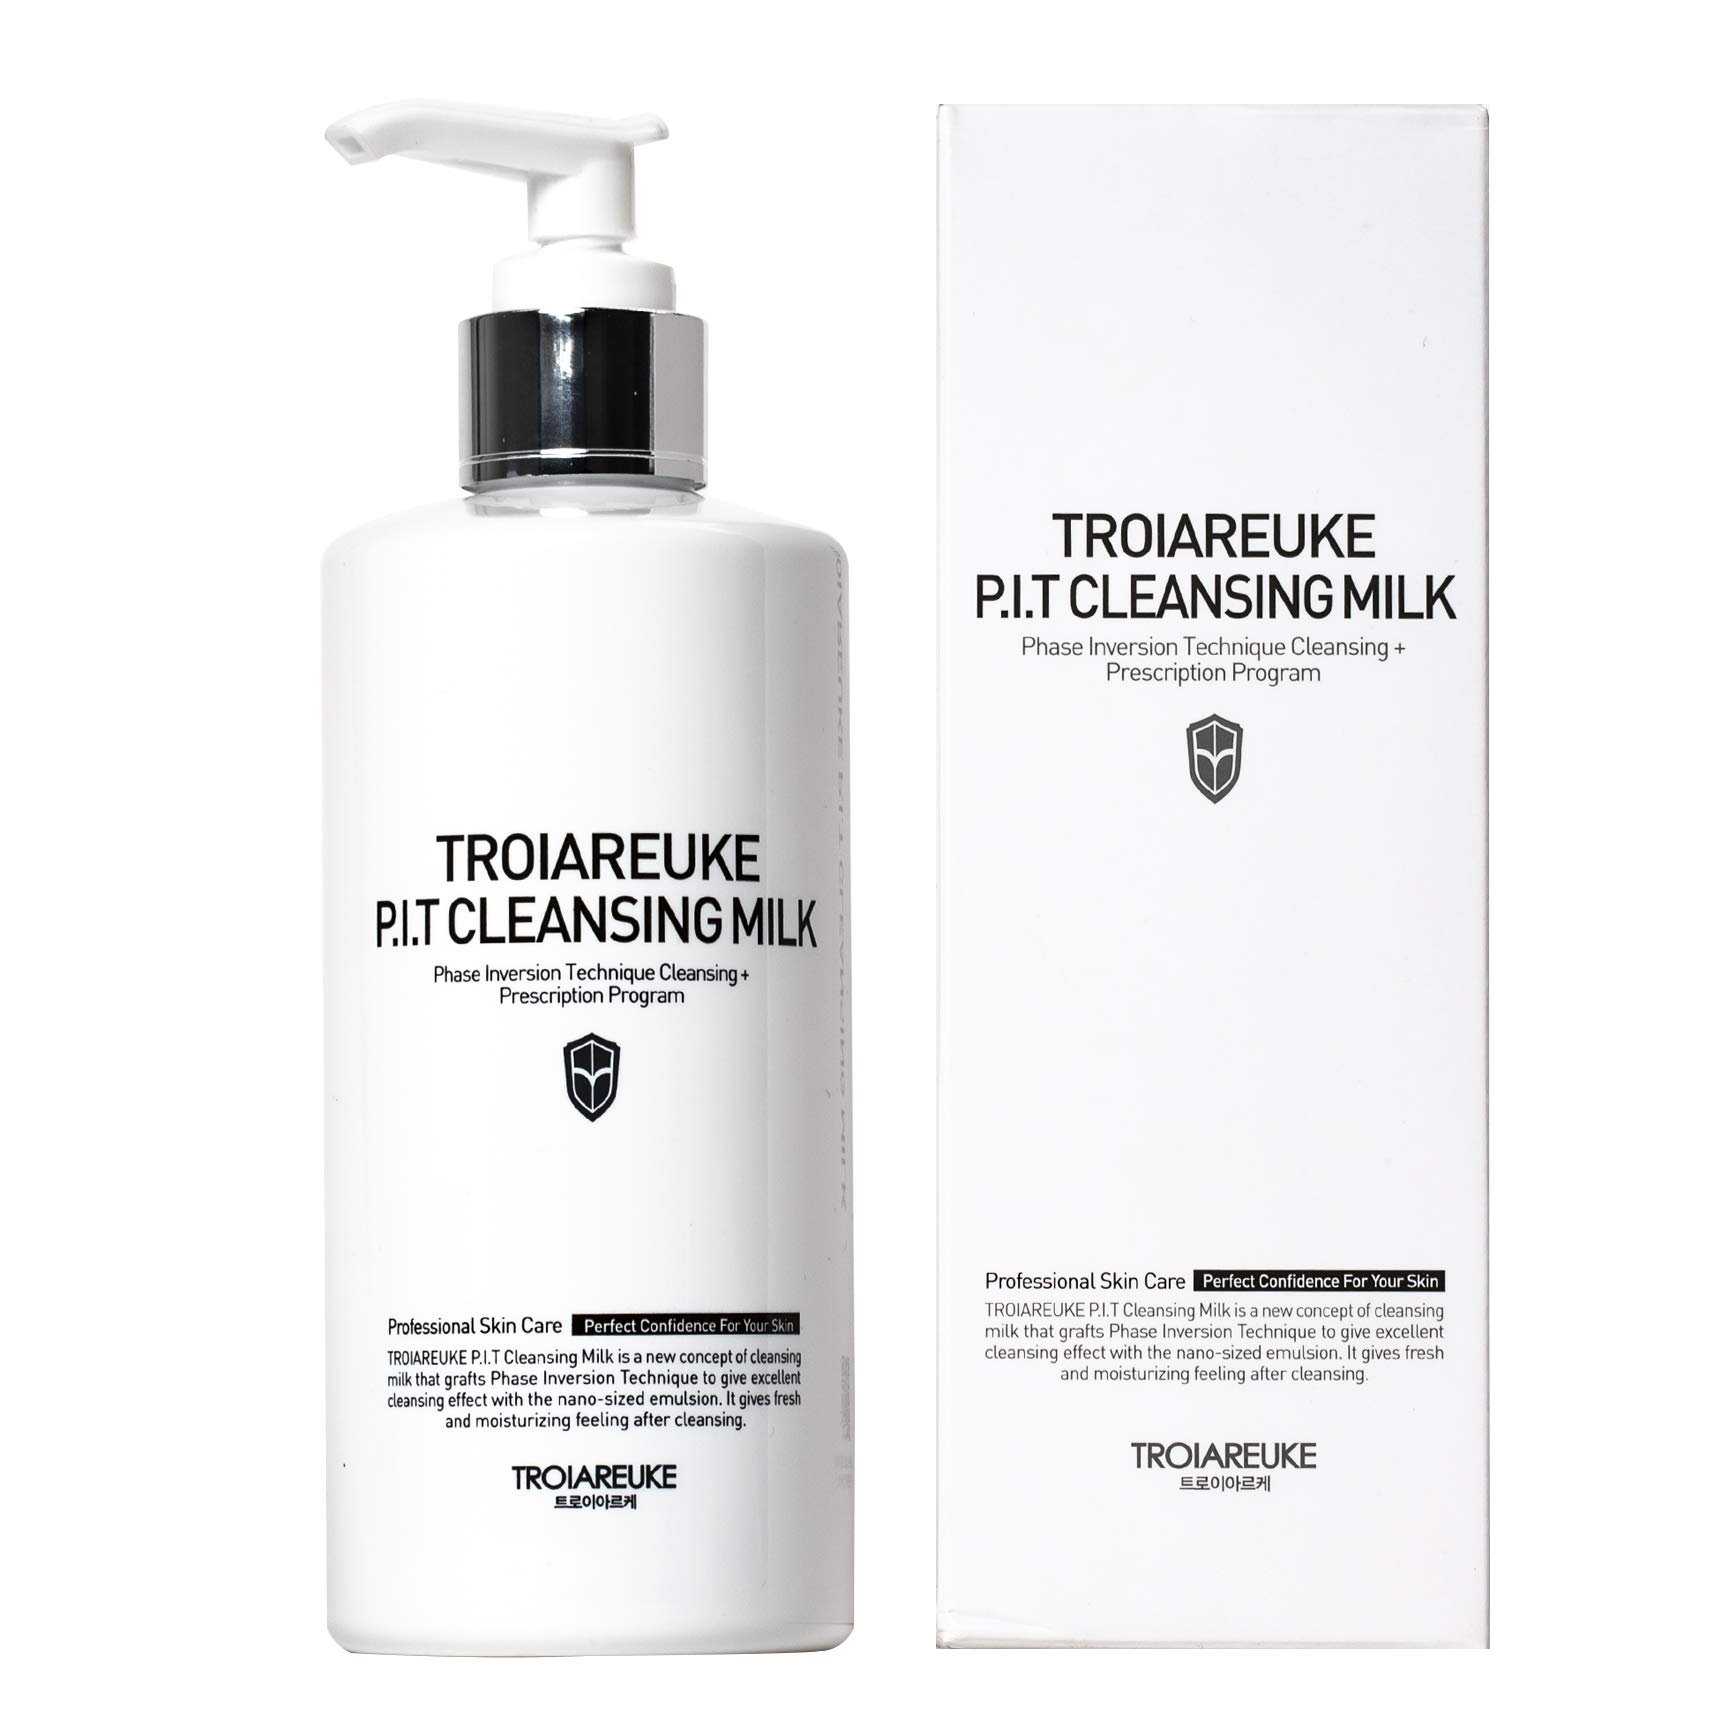 TROIAREUKE PIT Cleansing Milk 10.14 fl. oz., Hypoallergenic Cleansing Mask used by Aestheticians For Skin Care Treatment   Deep Cleansing Cream Packed With Antioxidants and Vitamins   Mineral Oil, Apricot Kernel Oil, Pine Leaf Extract, Camellia Seed Oil